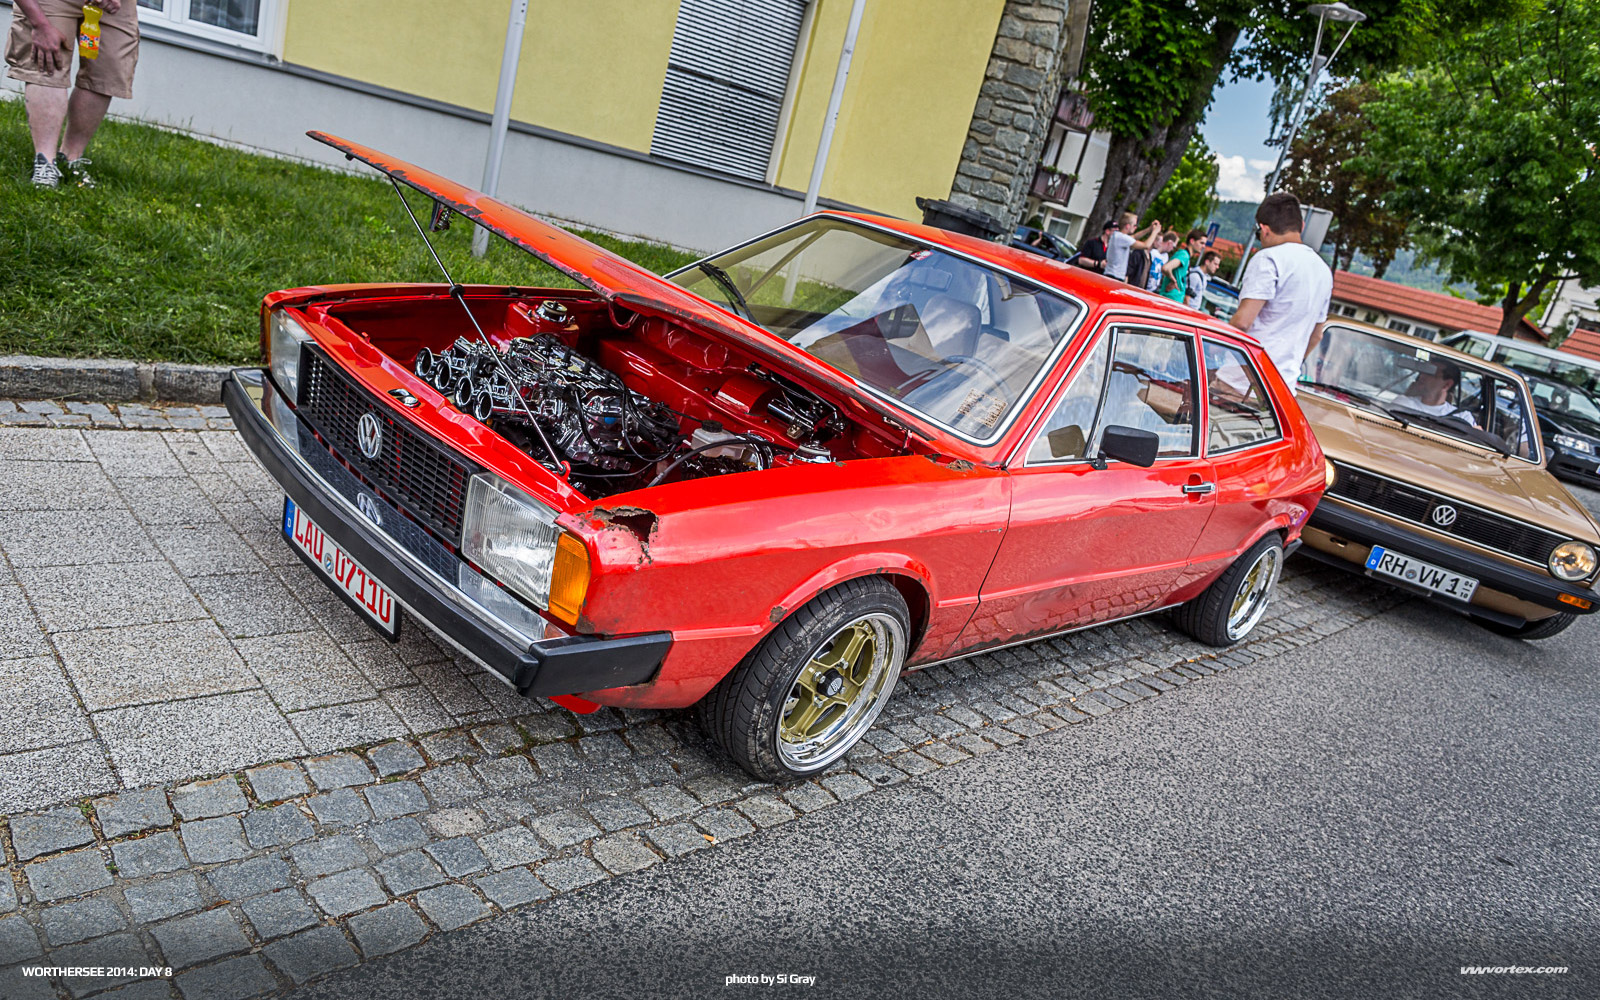 2014-Worthersee-Day-8-Si-Gray-1116